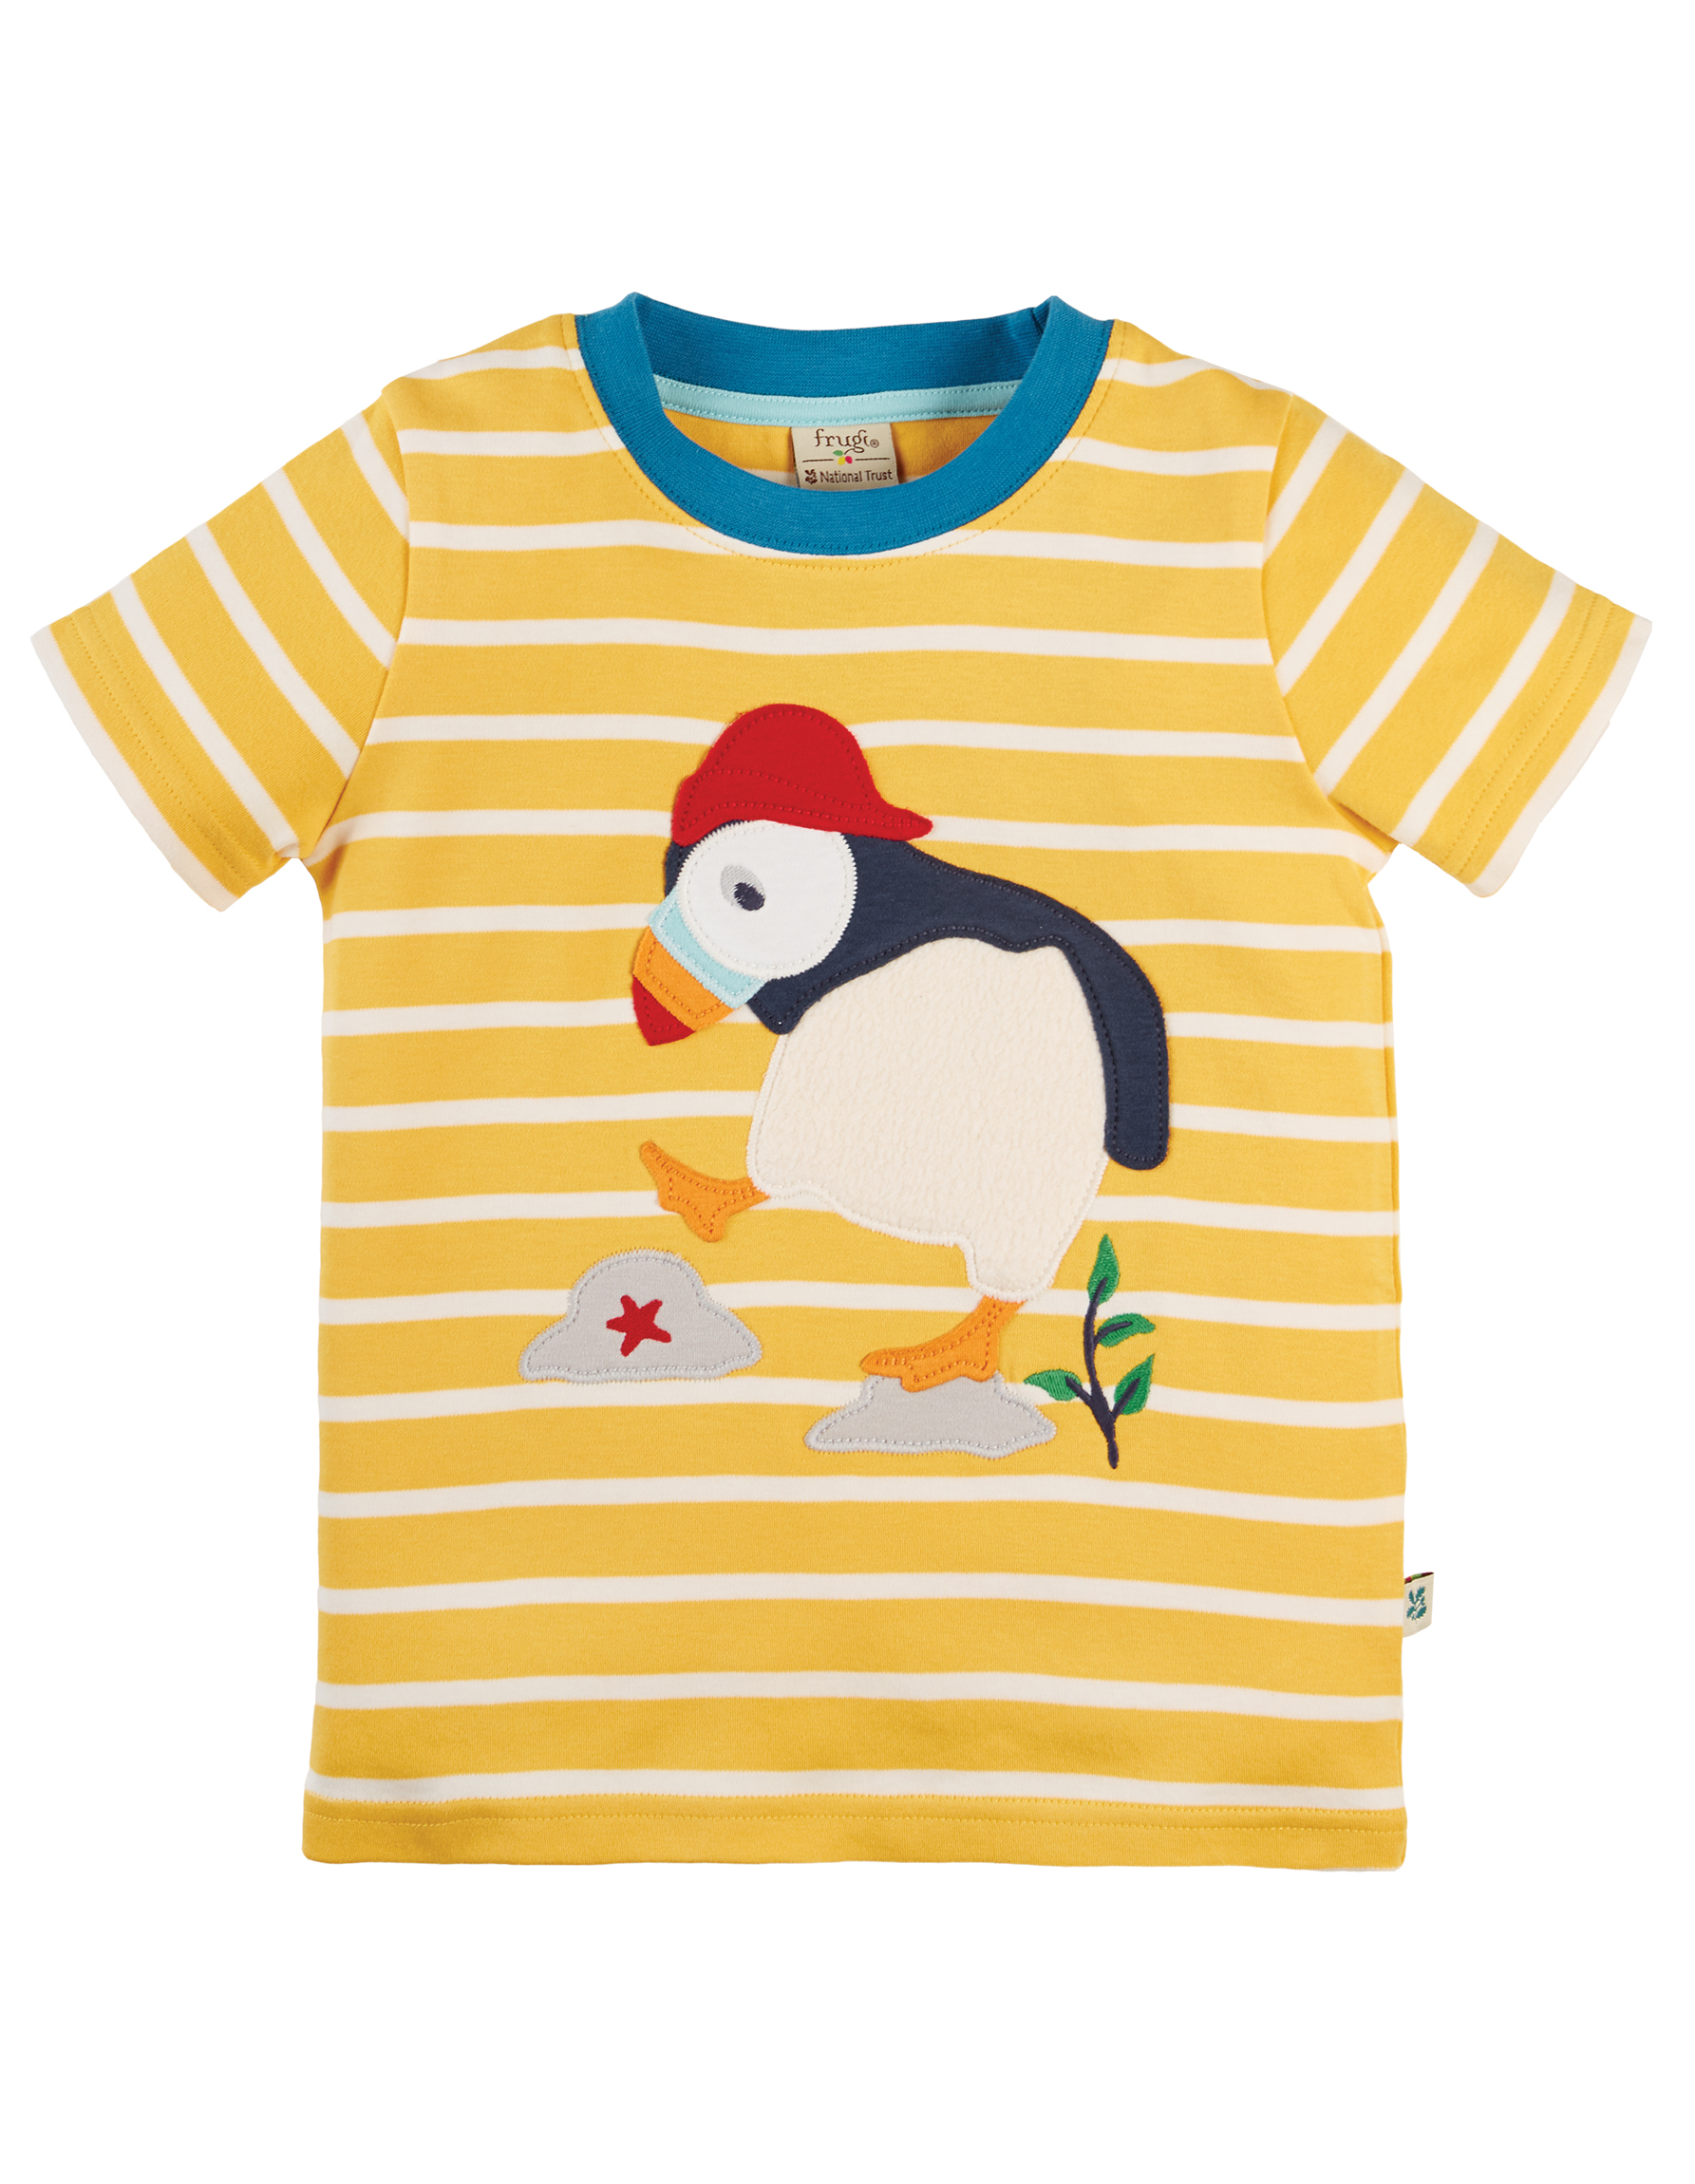 Frugi The National Trust Sid Applique T-Shirt, Puffin